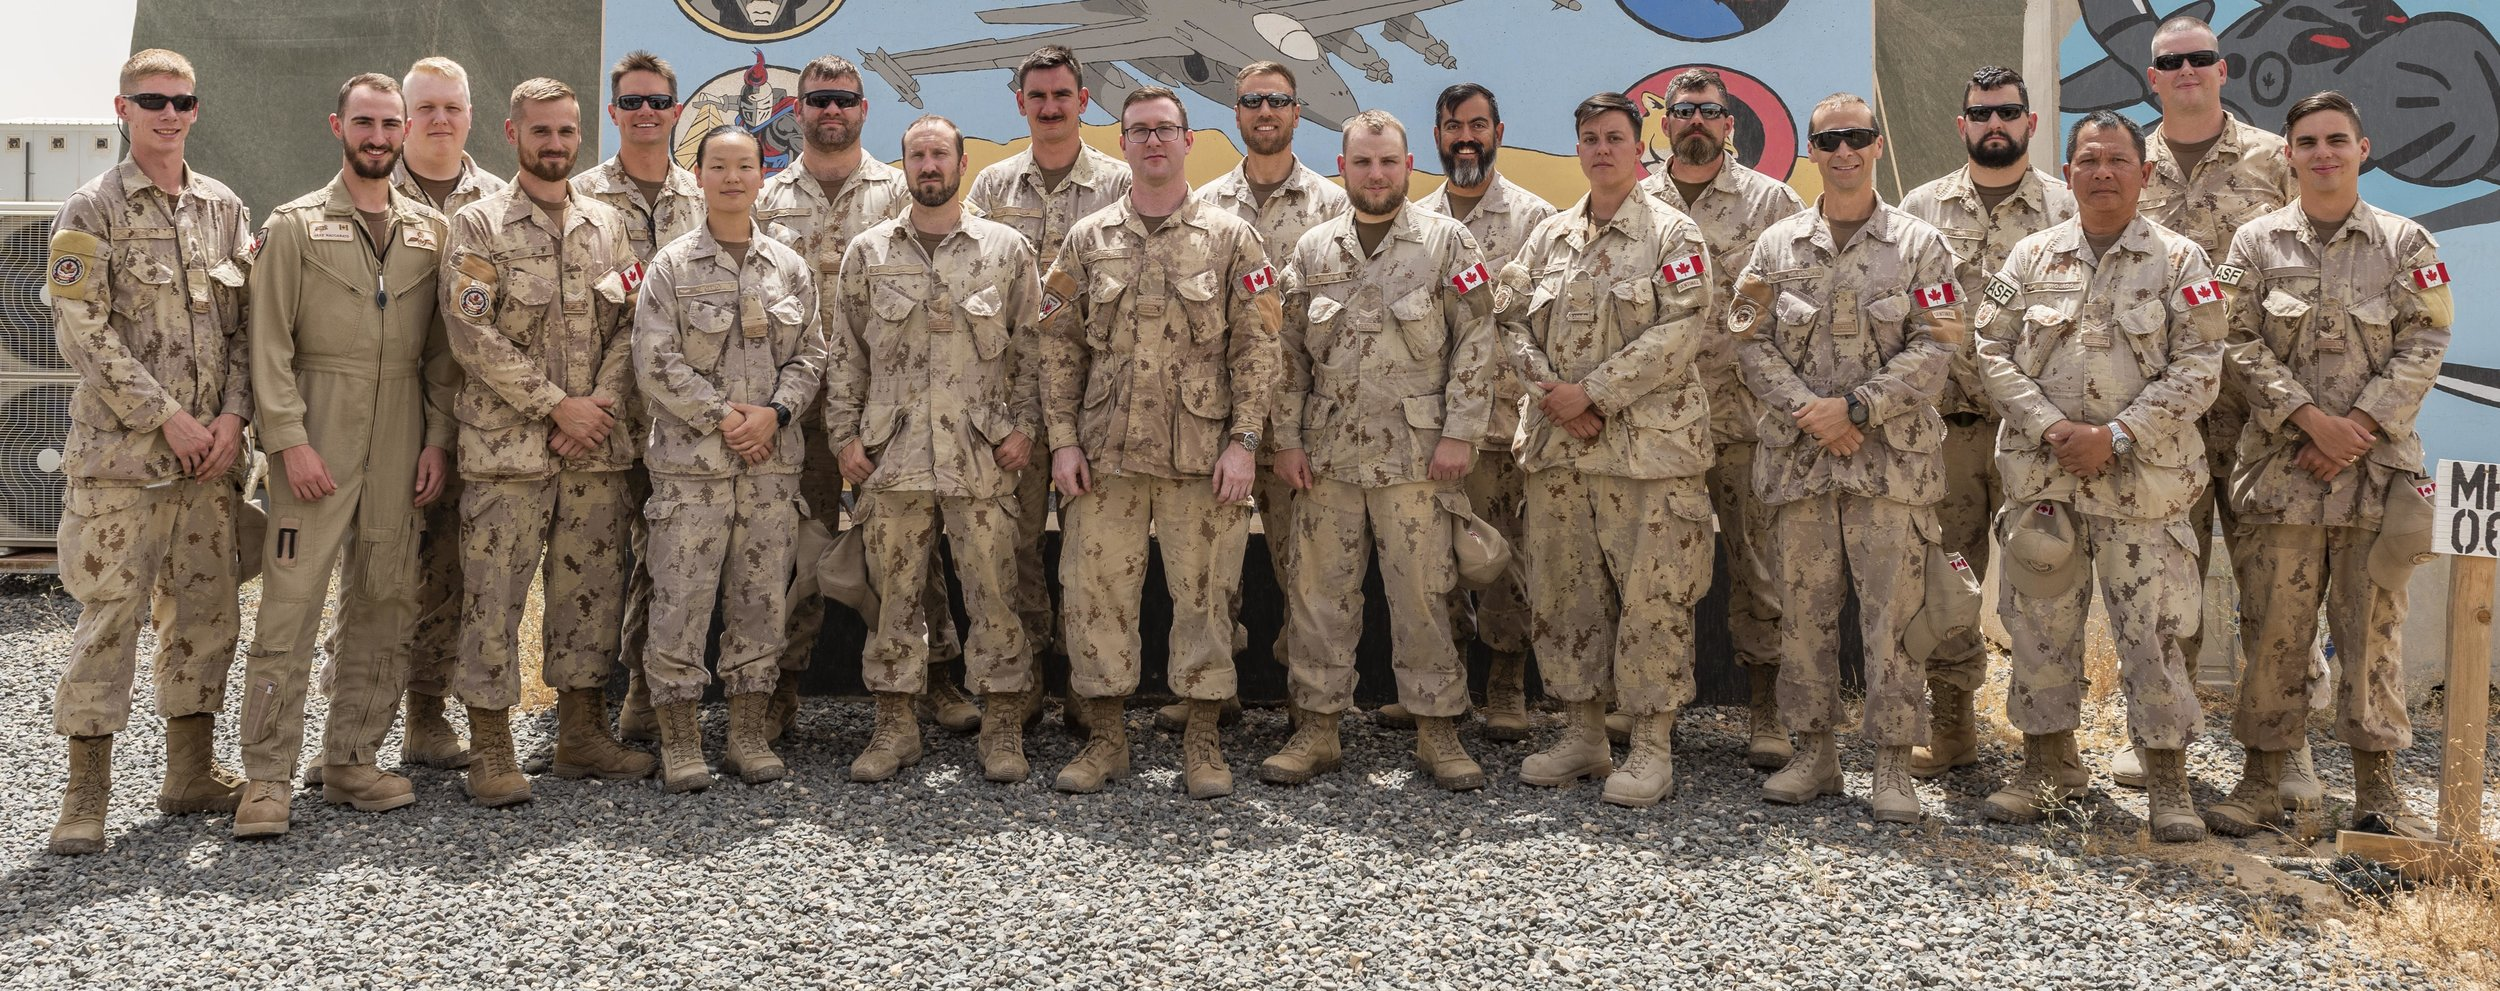 4 Wing Cold Lake, Alberta, personnel on Operation Impact at Camp Canada in Kuwait stand for a group photo on May 13, 2019. PHOTO: Master Corporal Bryan Carter, KW11-2019-0091-001